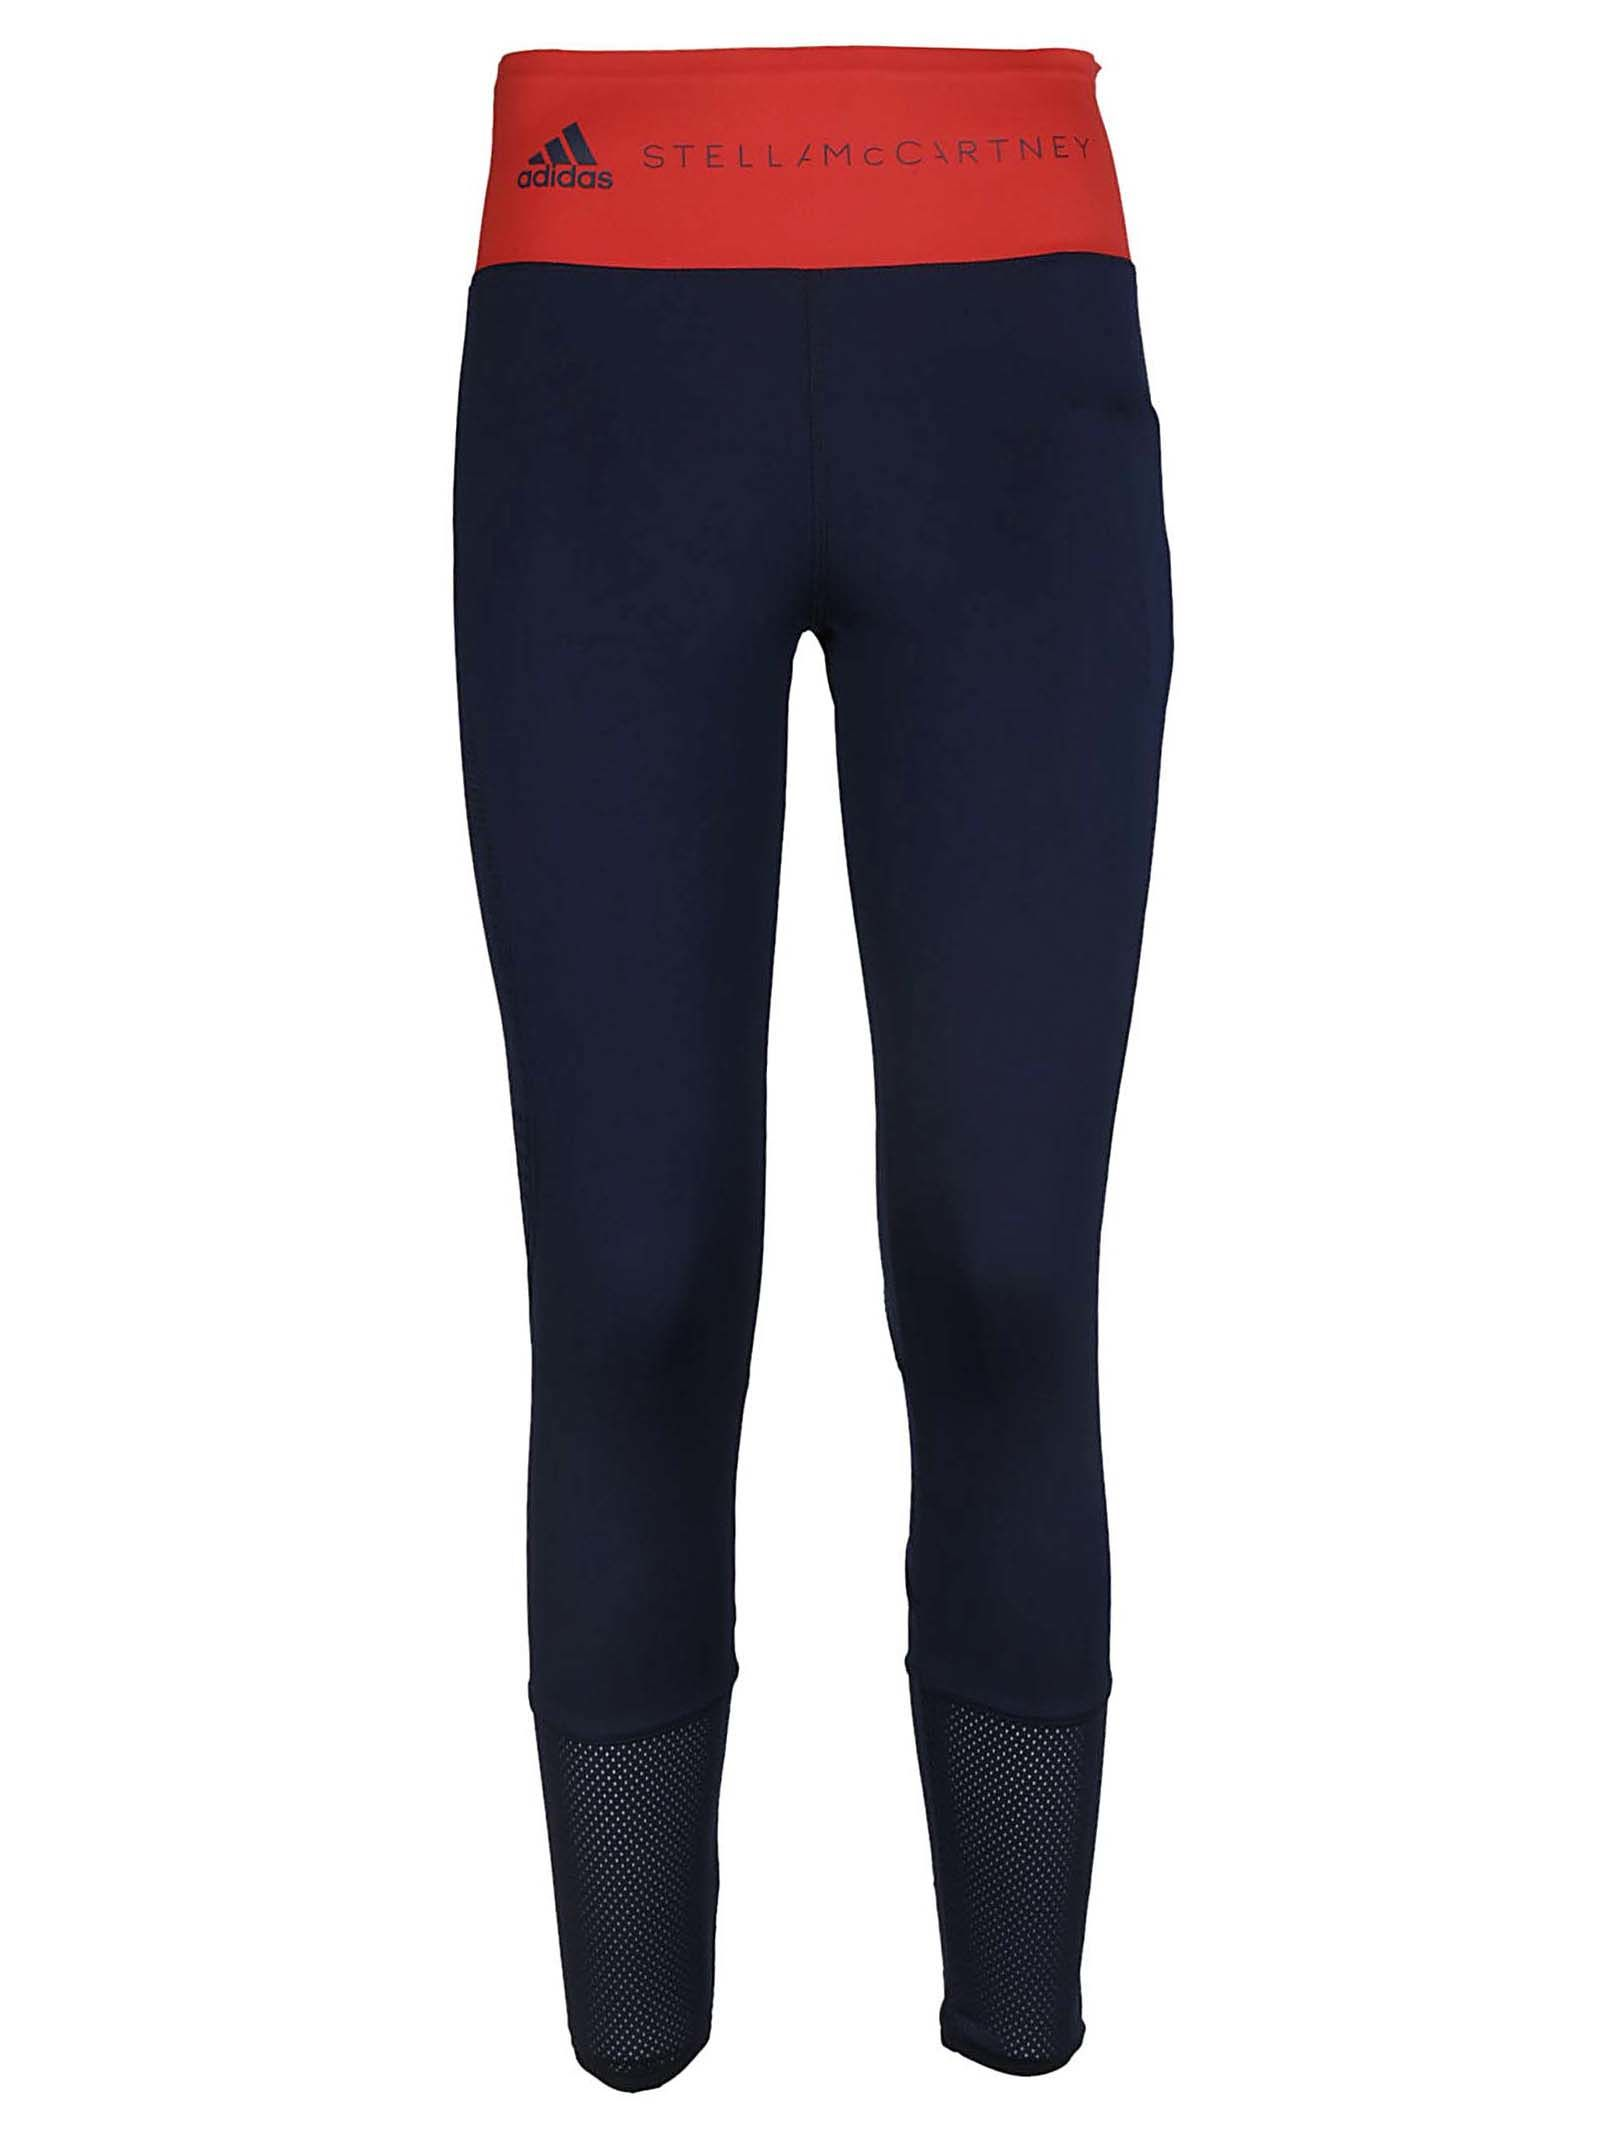 TRAINING ULTIMATE TIGHTS from Italist.com